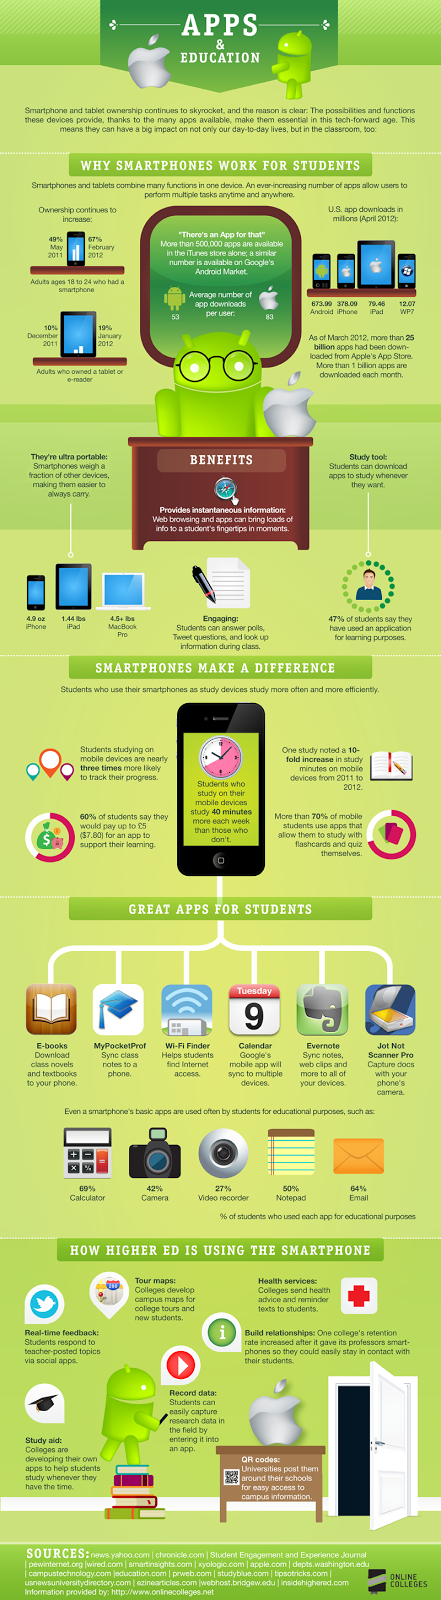 Apps & Education Infographic http://www.collegerecruiter.com/blog/wp-content/uploads/2012/08/Apps-and-Education-Infographic.png